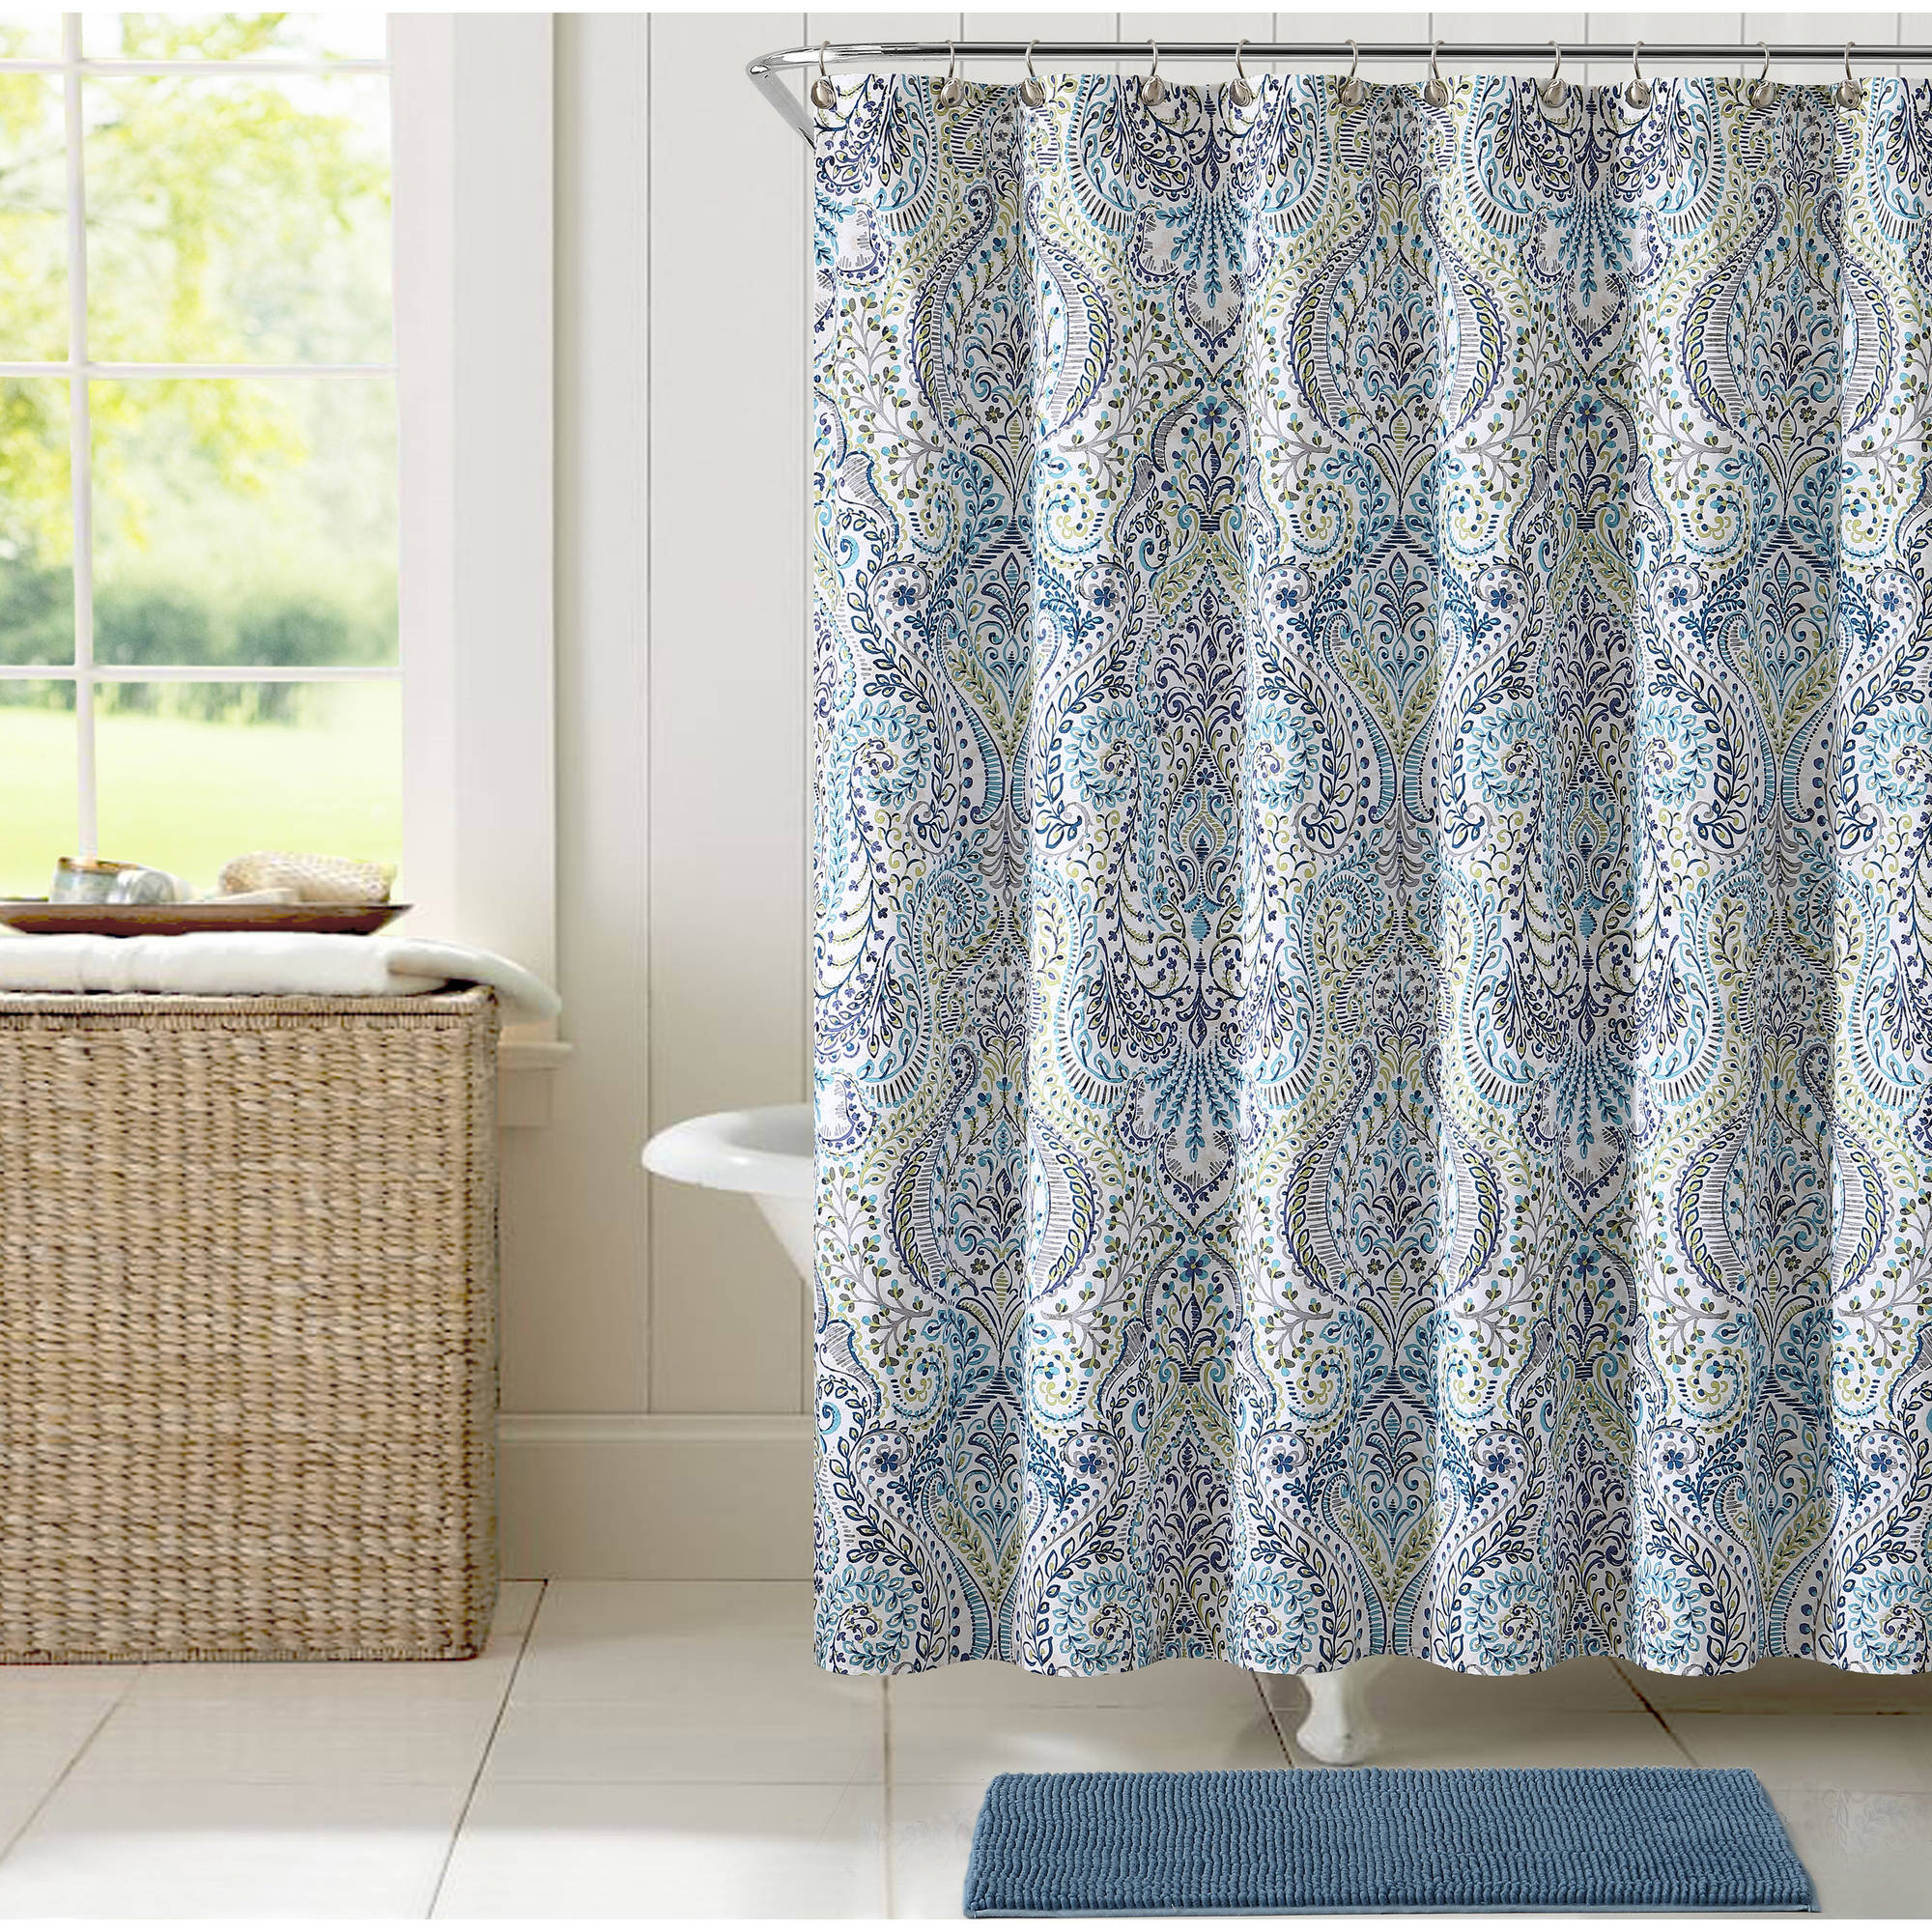 VCNY Home Anson Damask Printed 14-Piece Bath Set, Shower Curtain Hooks and Bath Rug Included